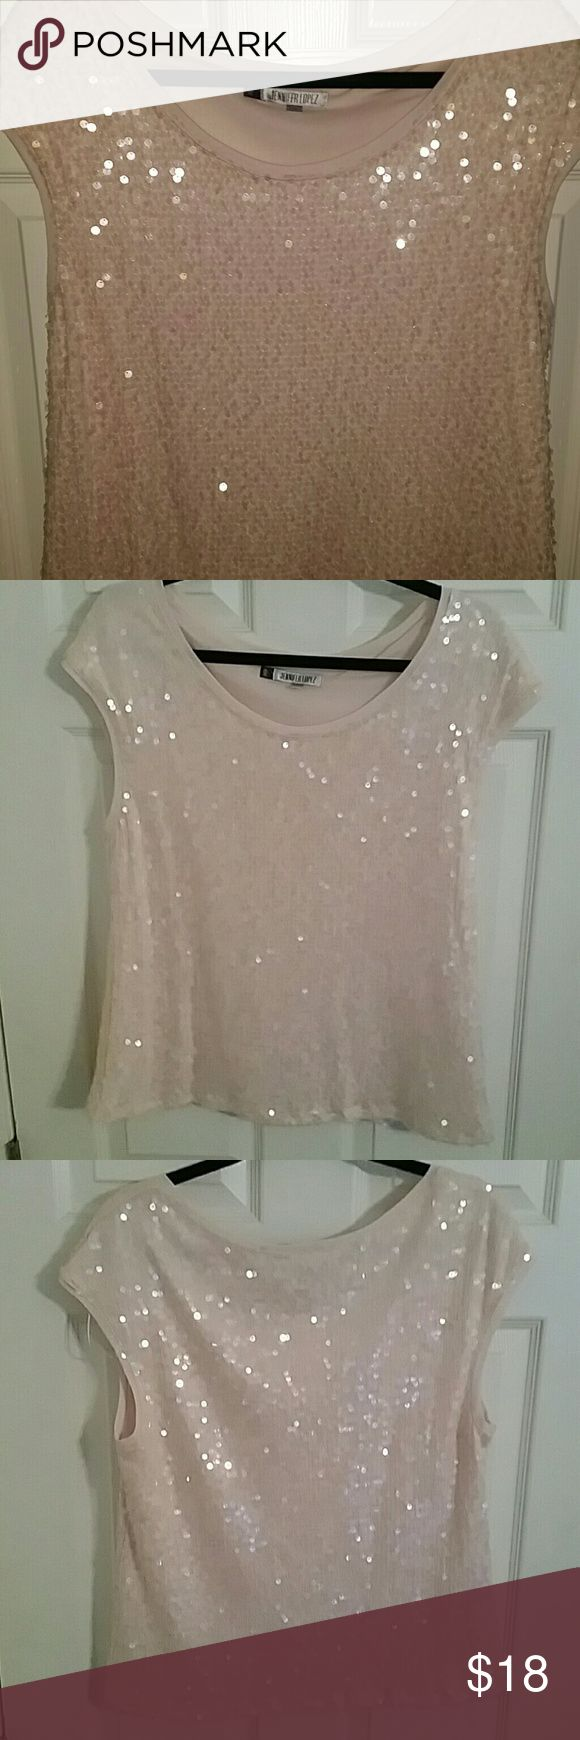 Super Sparkle champagne blush sleeveless shirt This is a fully sequined shirt, it does not only have sparkle in the front,  it sparkles in the back as well ! It's a full 360 celebration of shininess! This is casual enough to wear to work under  a coat  or Blazer yet definitely dressy enough to put on for that special party or holiday event. This shirt is fully lined so you won't get the itches from all of the thread work holding on hundreds of awesome clear iridescent sequins on a champagne…